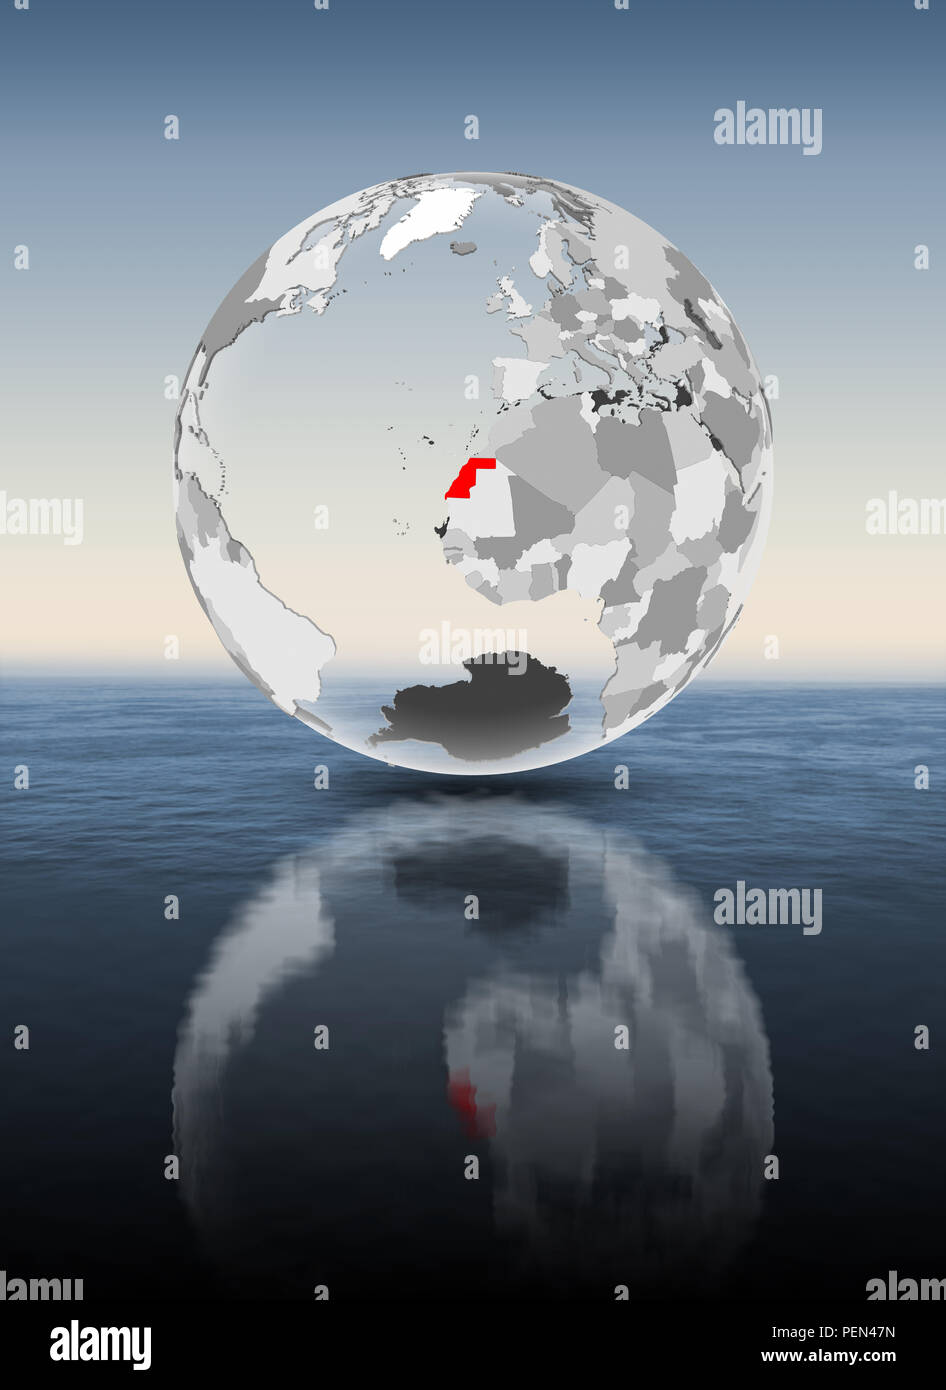 Western Sahara in red on translucent globe floating above water. 3D illustration. - Stock Image